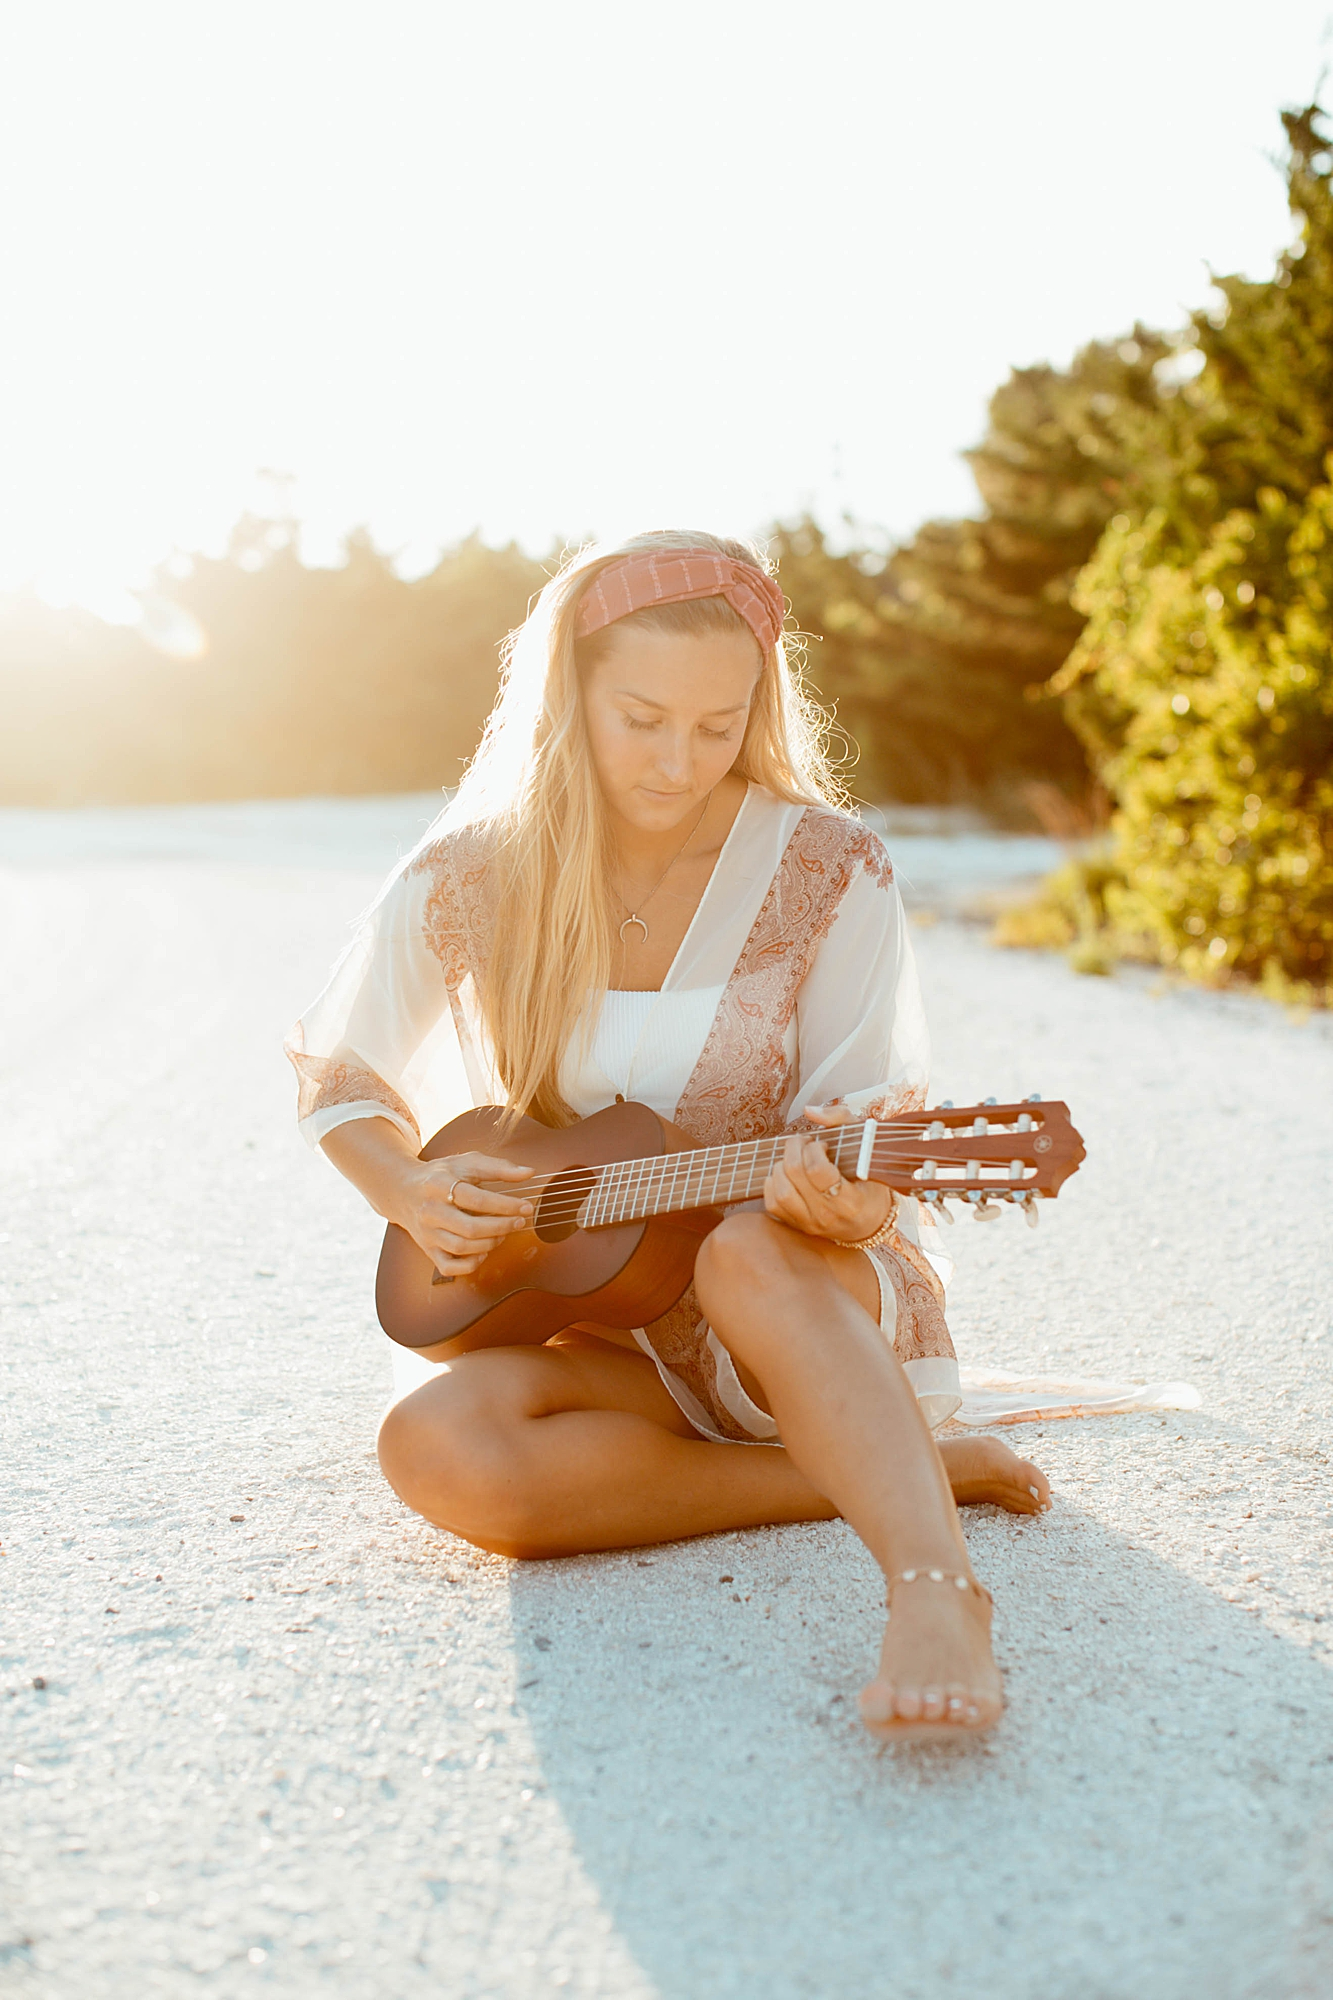 Natural and Bright Seaside Park New Jersey Boho Lifestlyle Beach Portrait Photography by Kelee Bovelle_0030.jpg